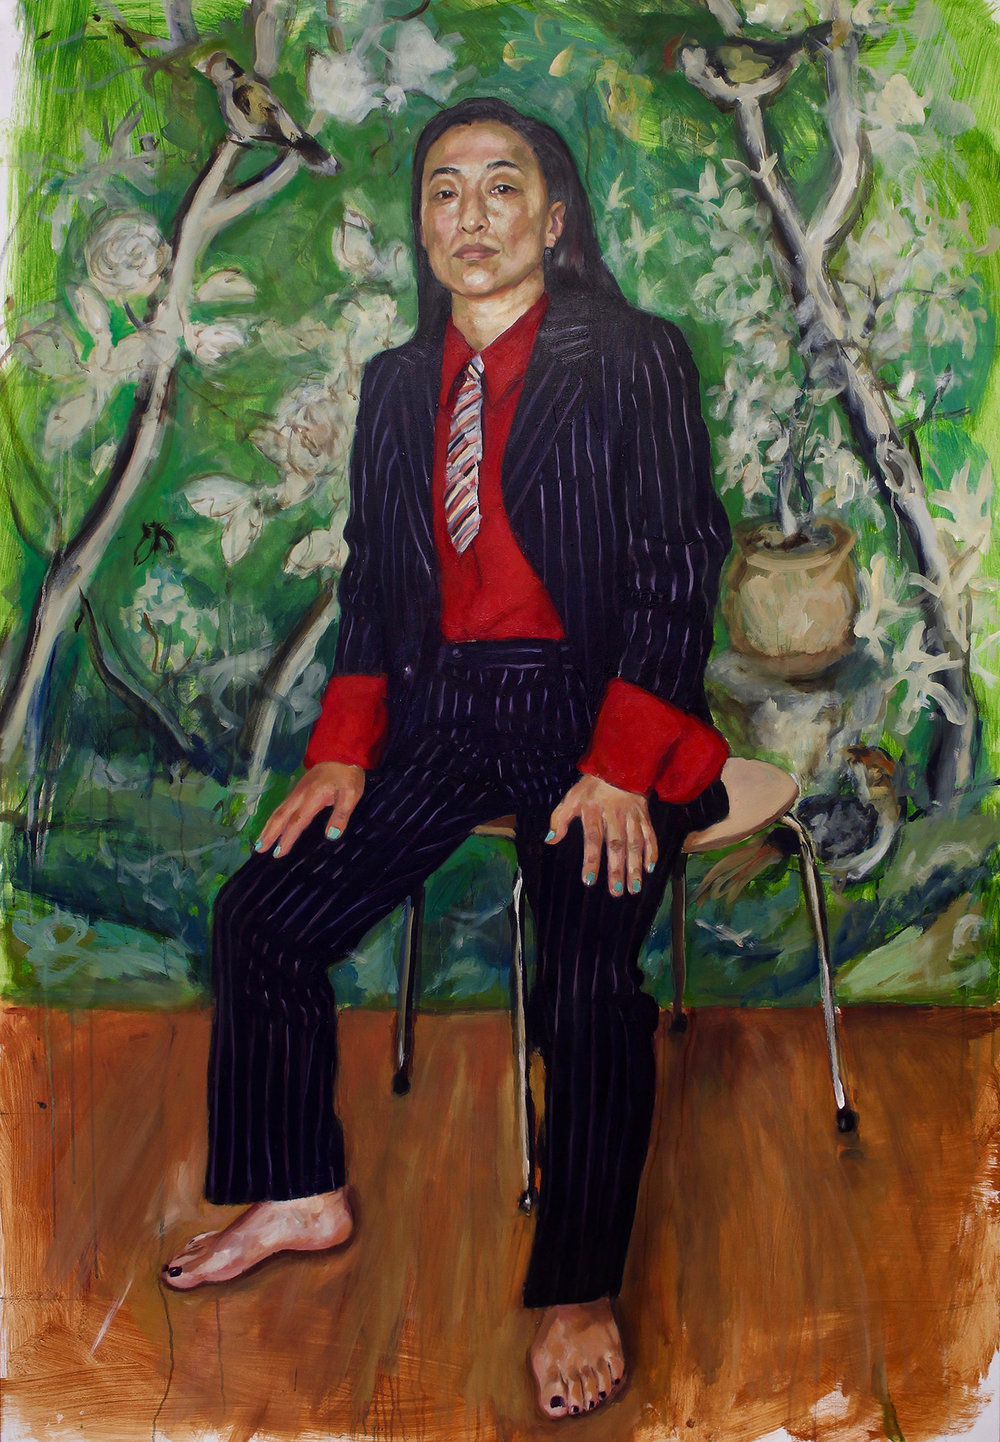 Caroline Wong - Little Boy's Suit (pictured) and Mixer. A portrait of burlesque performer Fancy Chance. This is the beginning of an ongoing series of life size portraits, subverting the stereotypes of East and Southeast Asian women. It's a way of meeting and connecting with women who similarly straddle Eastern and Western cultures and are forging their own identities in the face of this conflict; a way of getting their voices and stories heard, granting them visibility in a world where they are often expected to be silent and conforming; it's a therapeutic process, a form of self-portraiture conveying aspects of my character that have been suppressed over the years. In short, it's about the right for women to define themselves beyond the ideals of femininity imposed on them.Caroline Wong is an emerging London-based portrait artist. She has always been drawn to faces, what they reveal and conceal about a person and the mysterious and unique ways we connect with one another in our everyday lives. Not wanting to be tied down to a particular 'style' or medium, her aim is to create portraits that are bold and expressive, yet sensitively rendered. She is currently studying for the Portrait Diploma at the Art Academy and was a finalist in the Sir Trousdell Portrait Prize and the Holly Bush Emerging Woman Painter Prize this year.